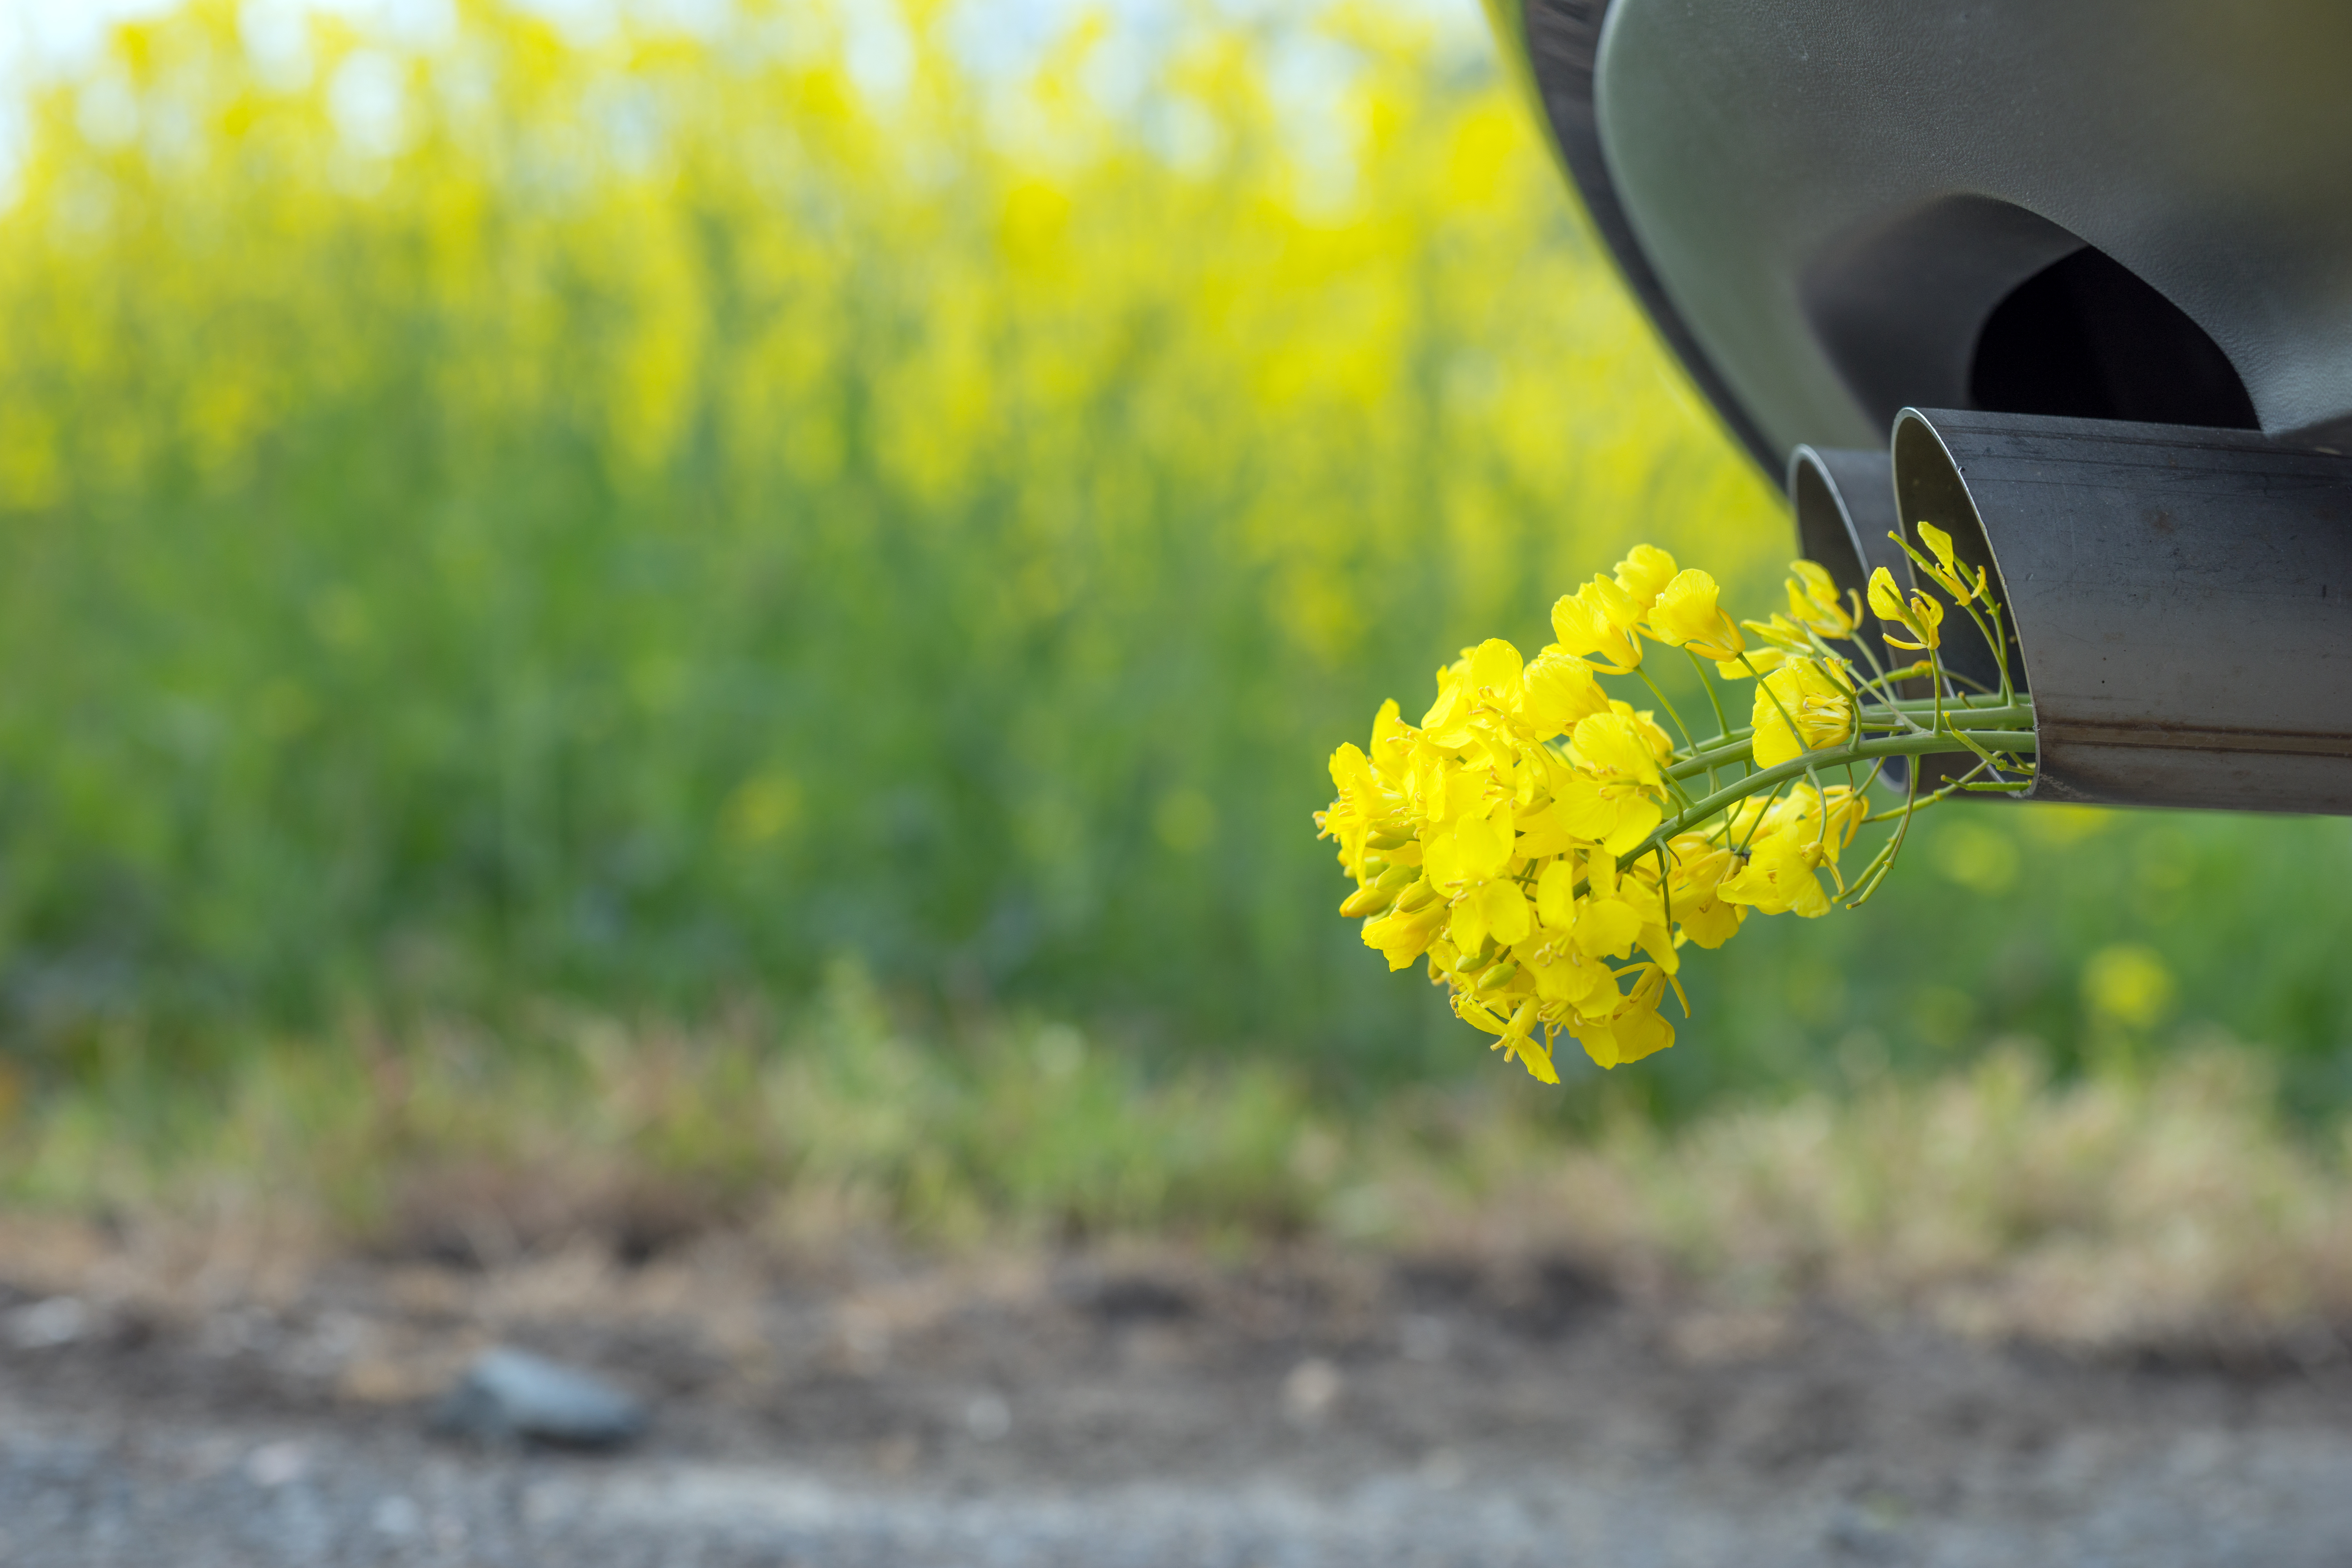 Close up of a vehicle's exhaust pipe with yellow flowers coming out of it, against a backdrop of a field of yellow flowers